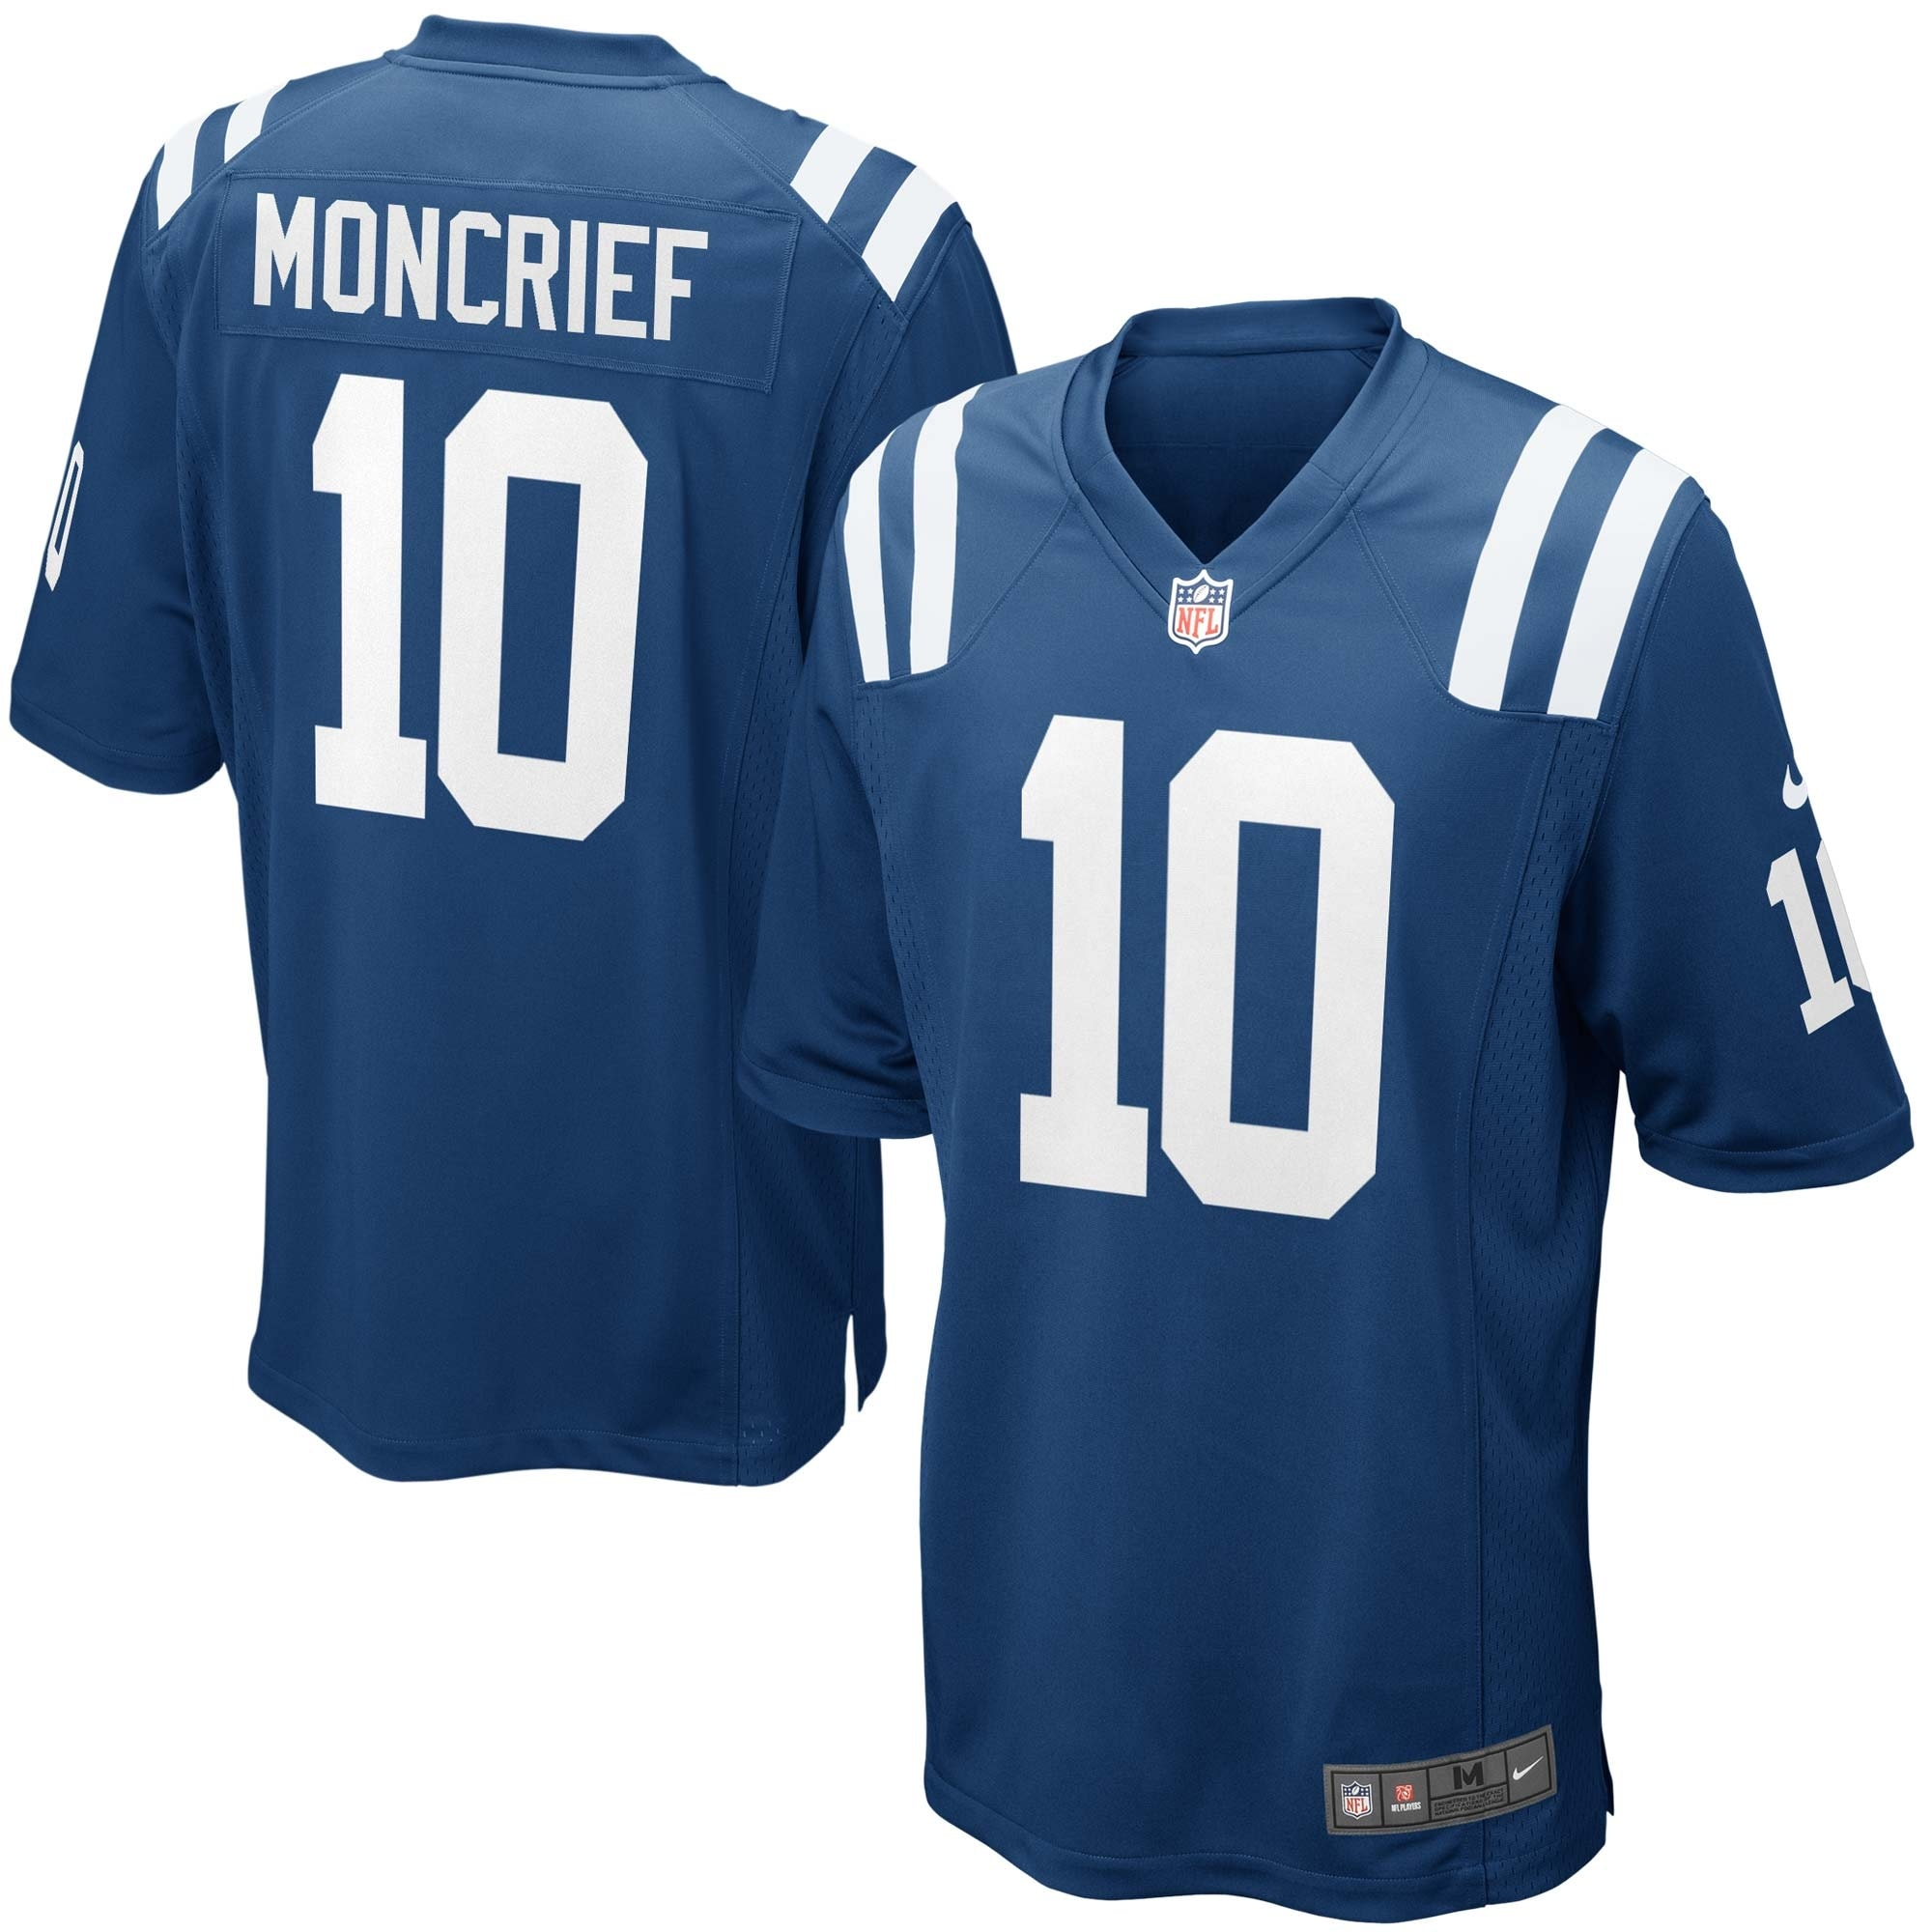 Donte Moncrief Indianapolis Colts Youth Nike Team Color Game Jersey - Royal Blue